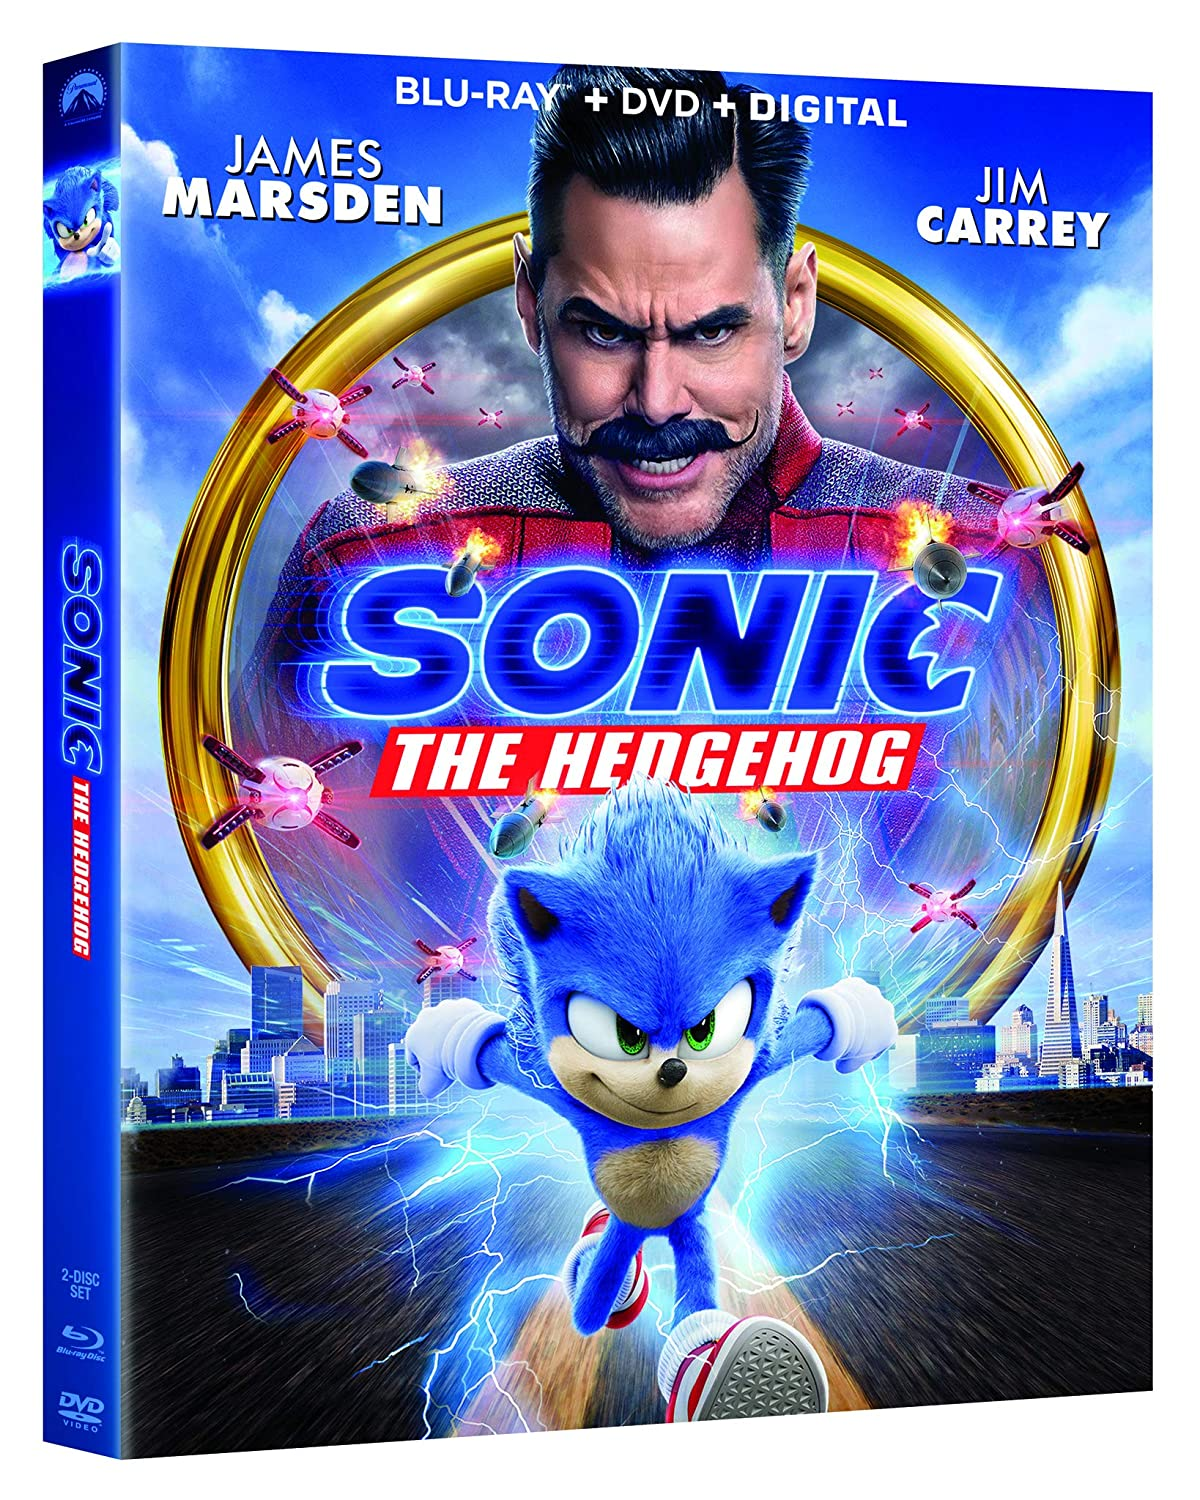 Amazon Com Sonic The Hedgehog Blu Ray James Marsden Jim